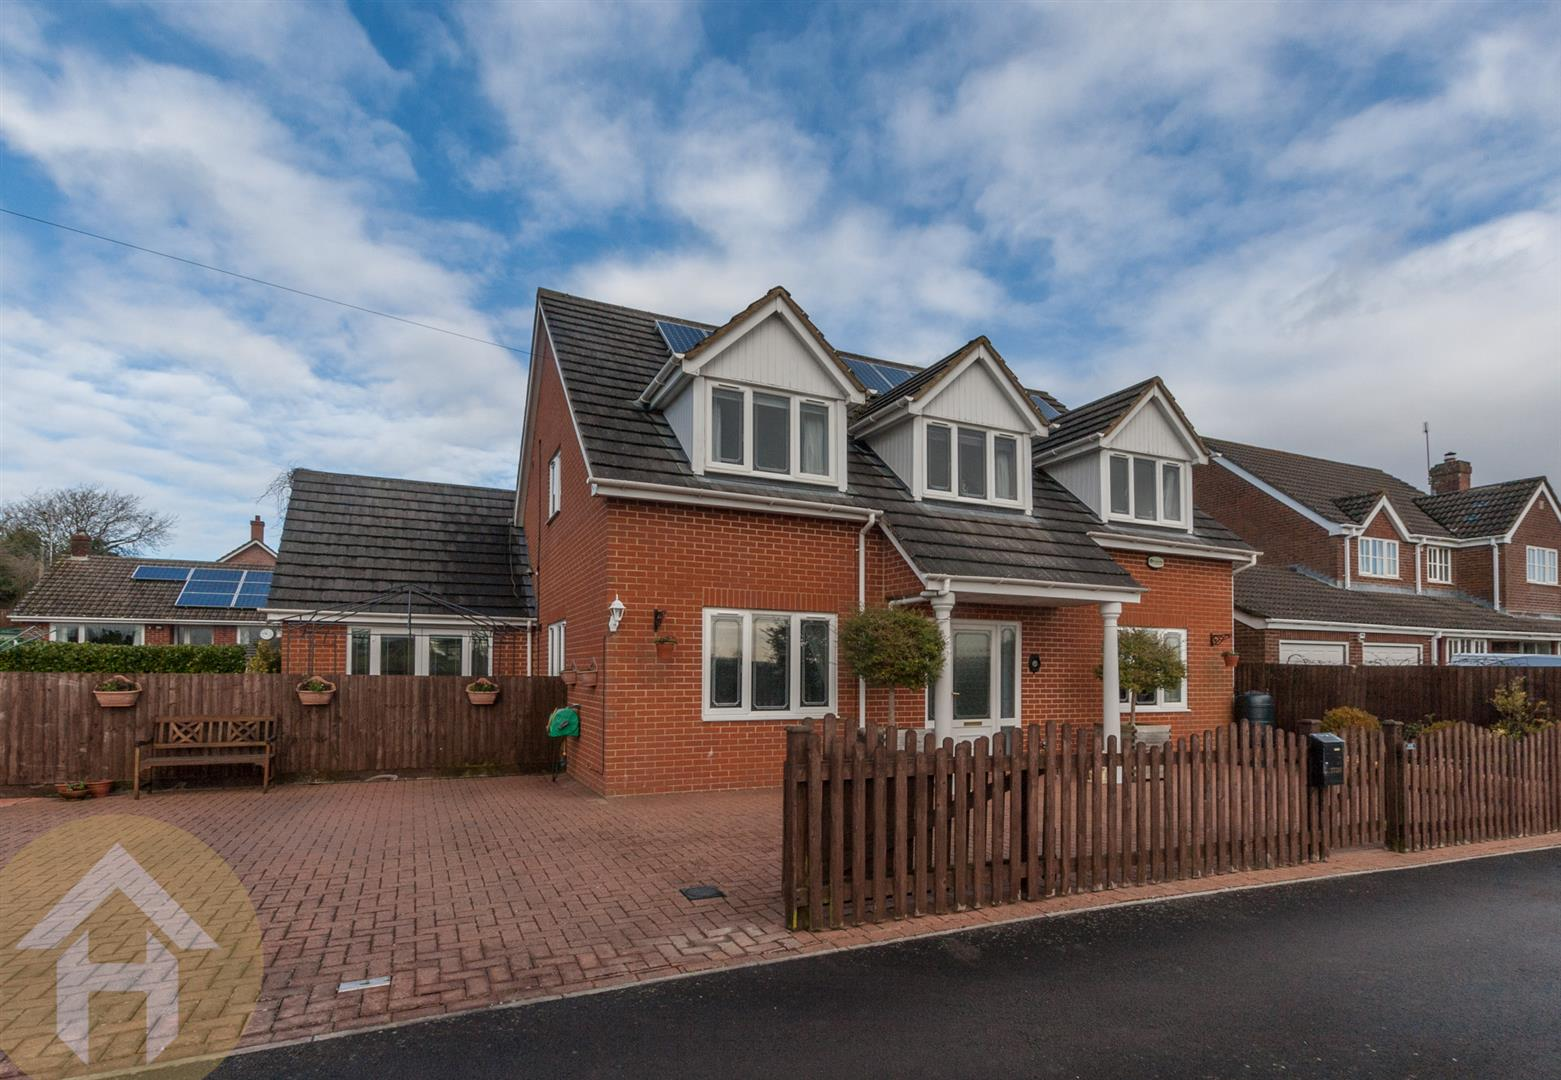 3 Bedrooms Detached House for sale in High Street, Purton, Swindon SN5